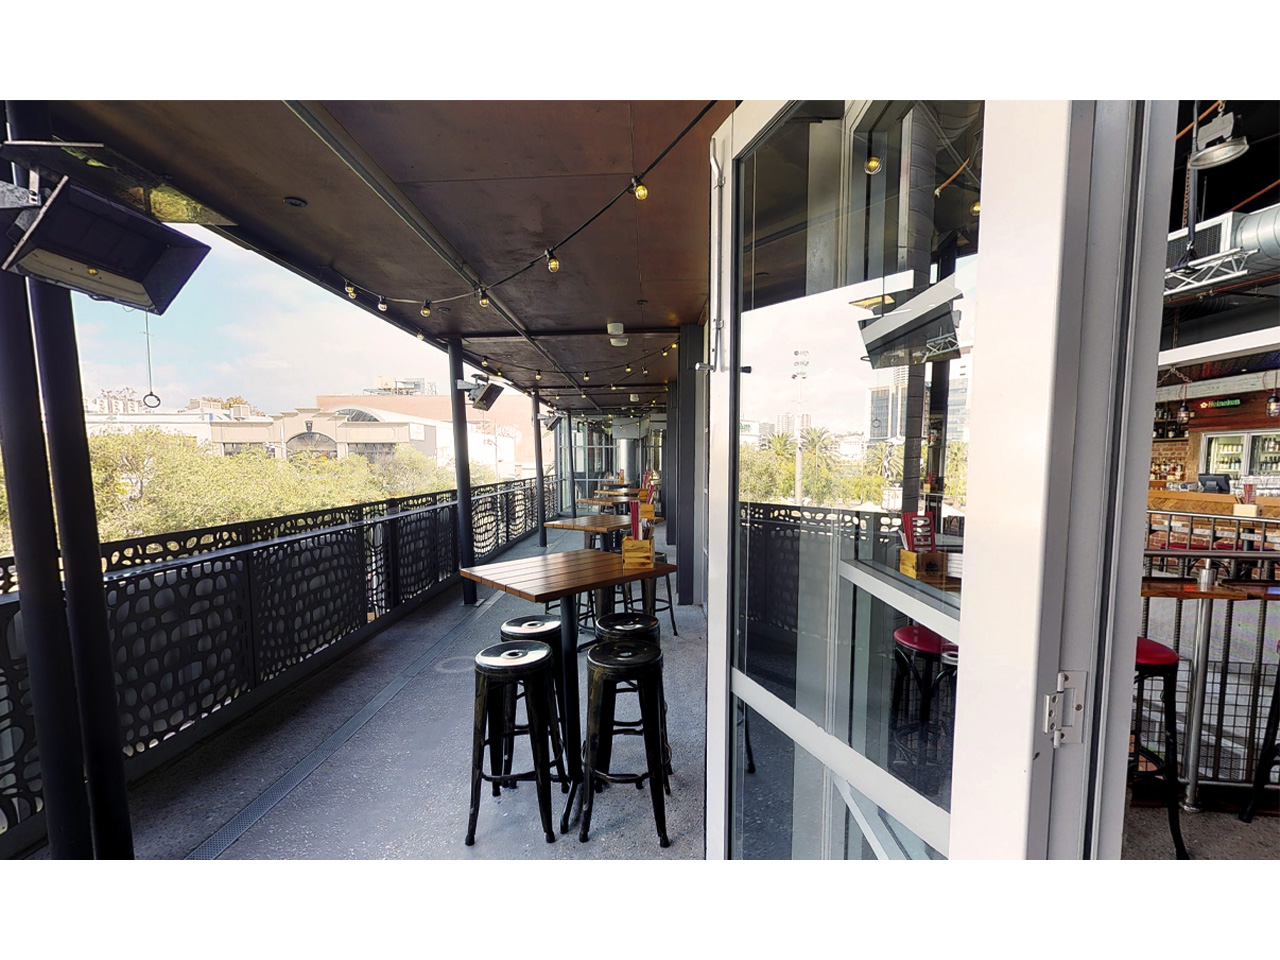 Balcony with chairs and tables overlooking Northbridge